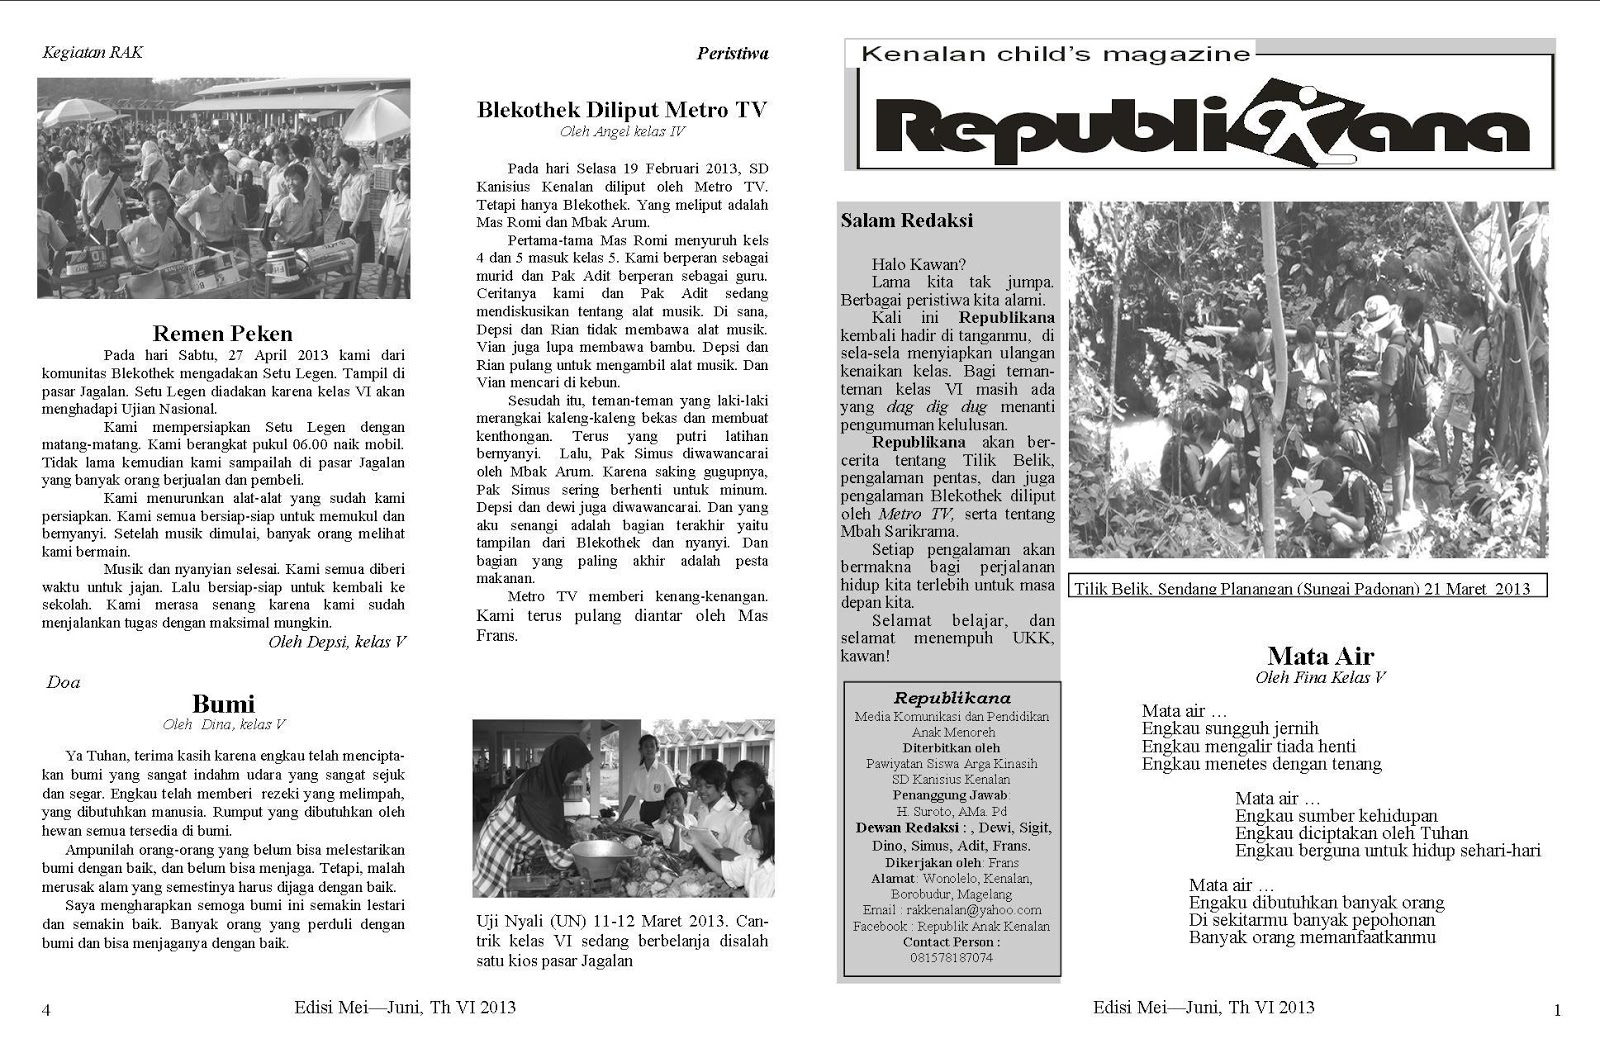 Republikana Mei 2013 | sumber: http://republikanakkenalan.blogspot.co.id/